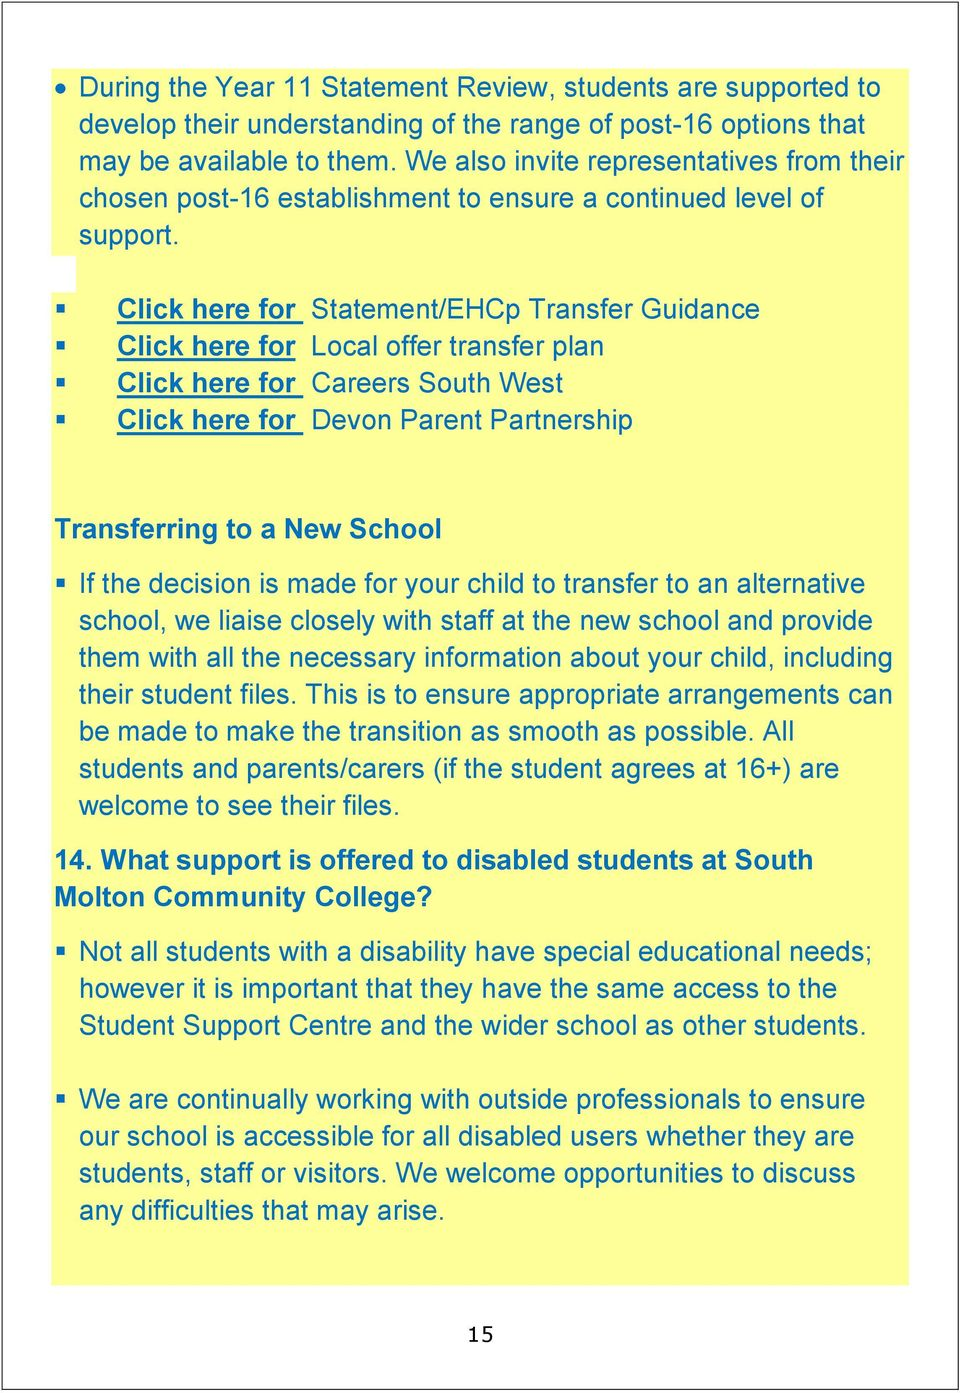 Click here for Statement/EHCp Transfer Guidance Click here for Local offer transfer plan Click here for Careers South West Click here for Devon Parent Partnership Transferring to a New School If the